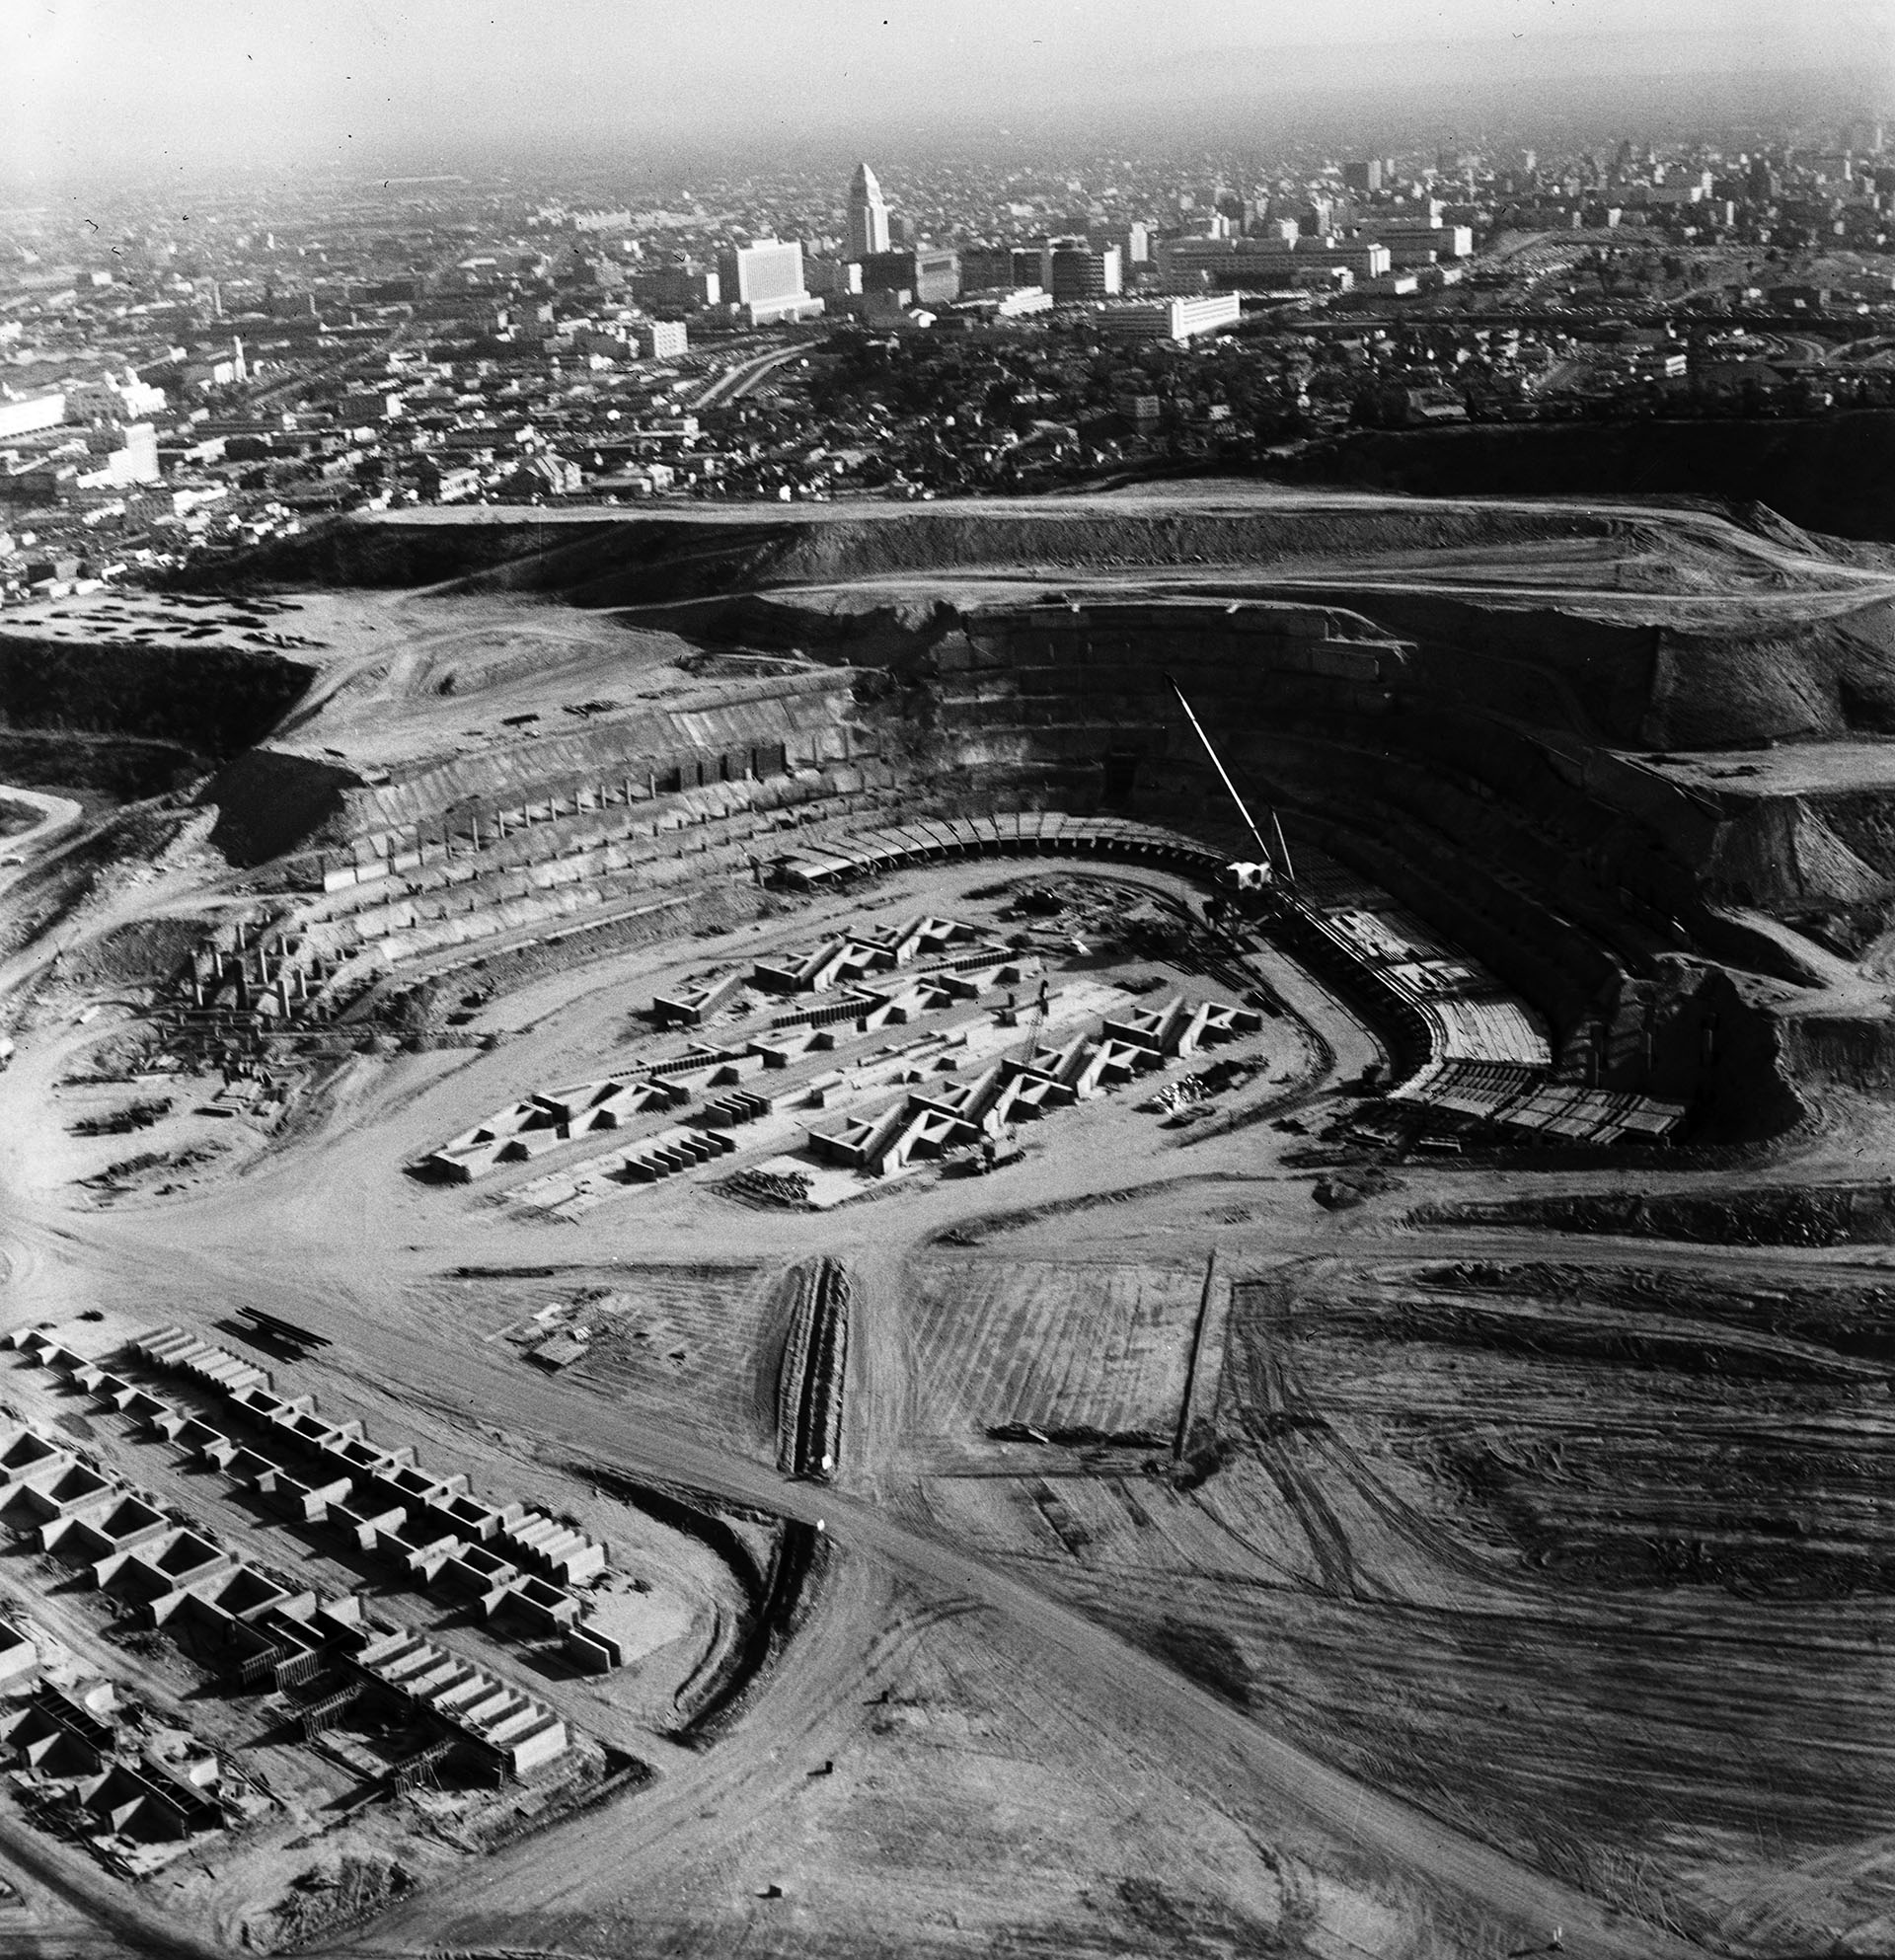 Dodger Stadium under construction on April 28, 1961. Courtesy of the USC Libraries - Los Angeles Examiner Collection.